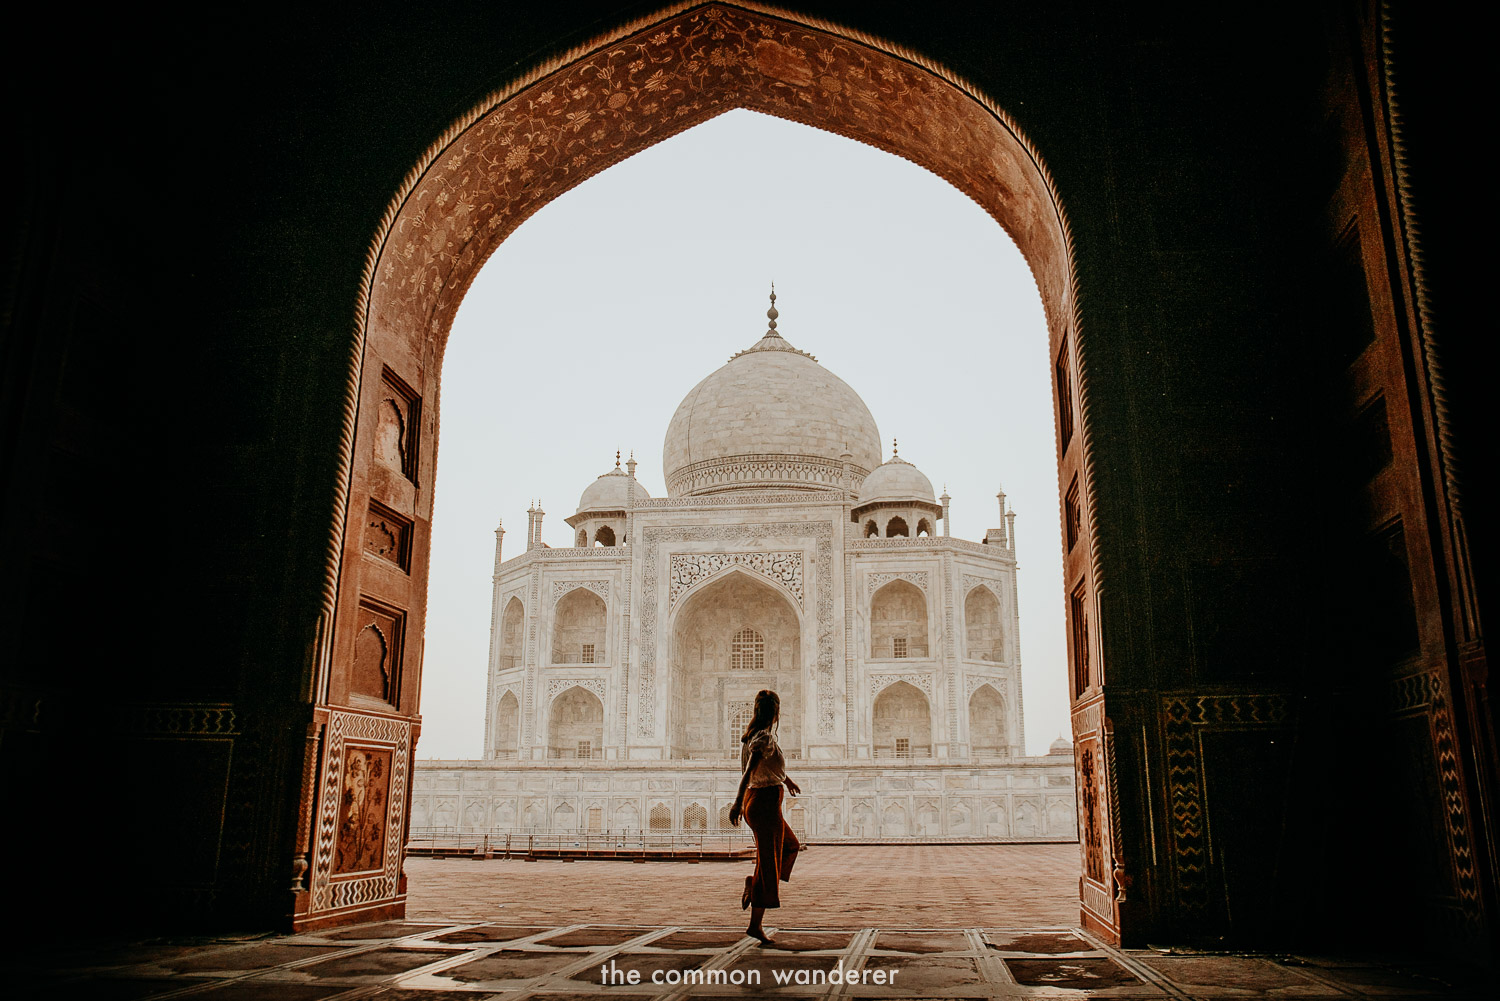 Experiencing the Taj Mahal on our G Adventures India by rail tour